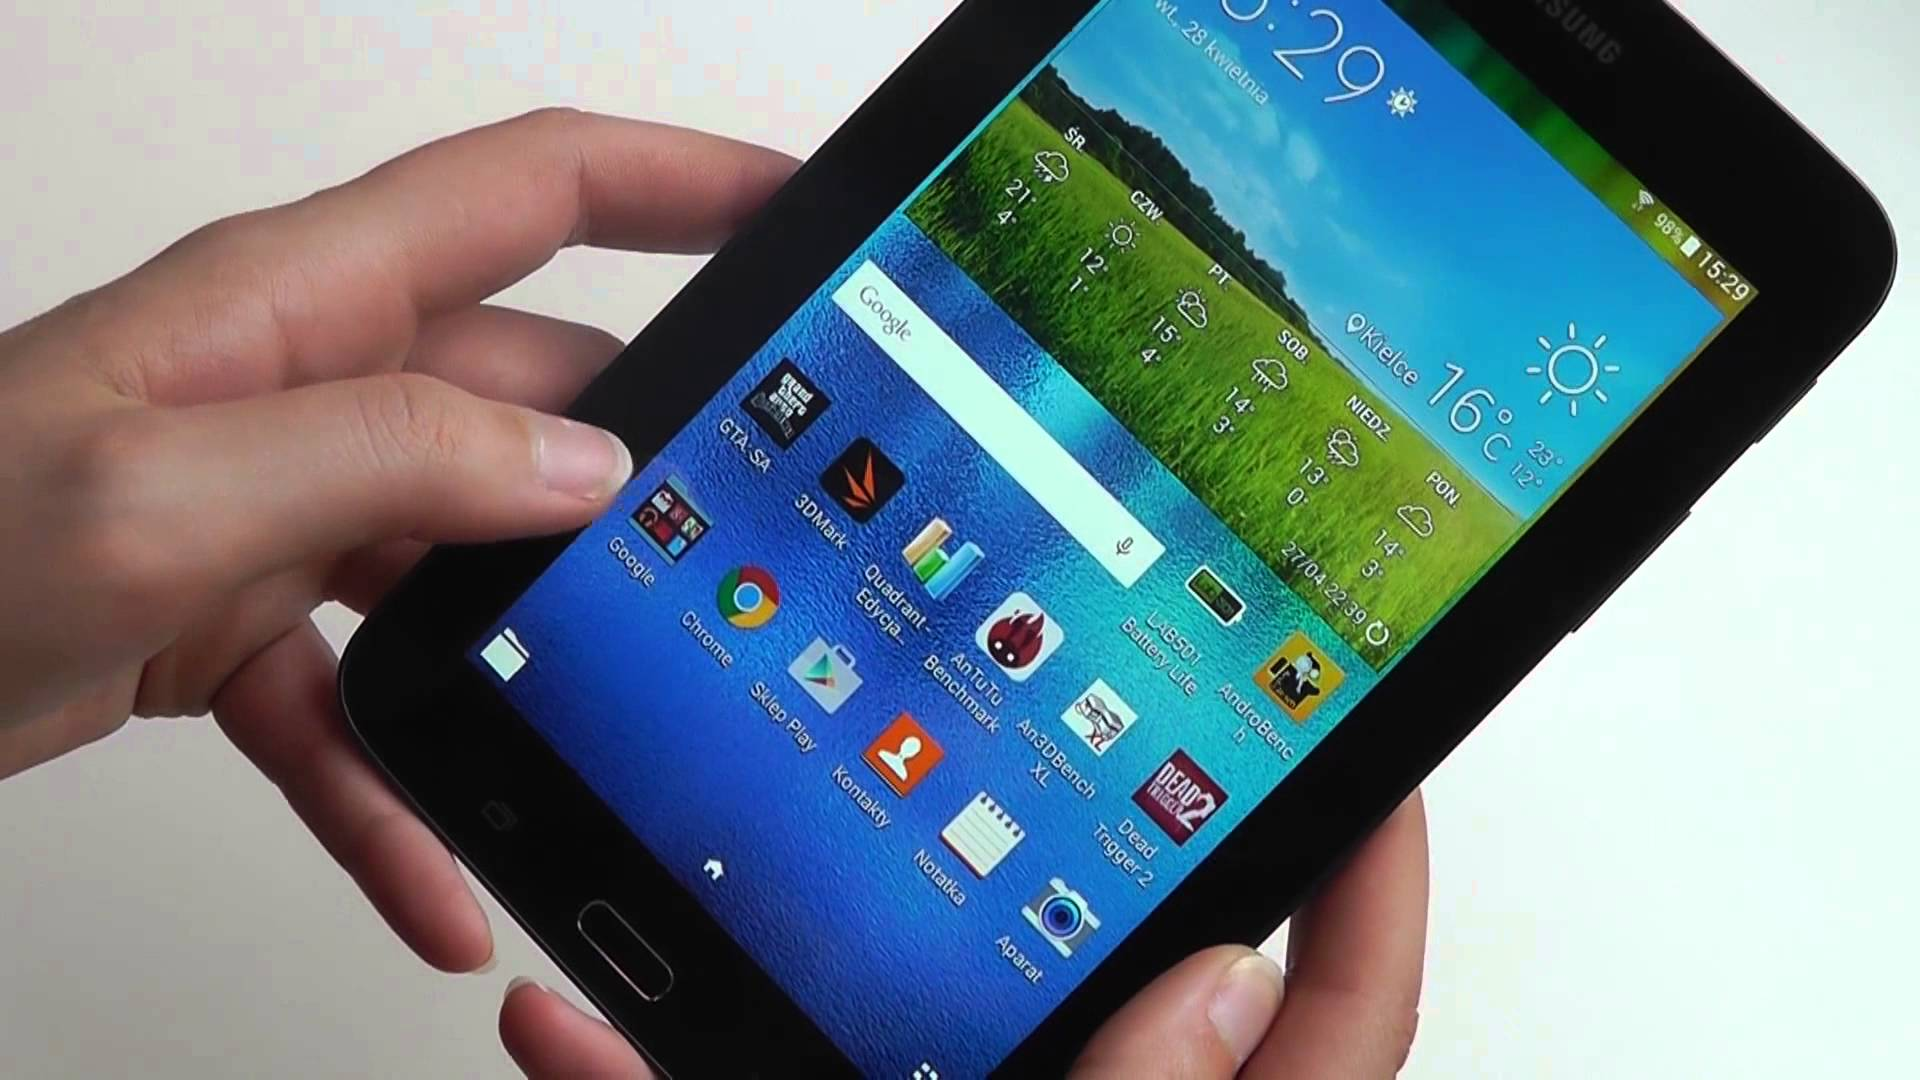 планшет Galaxy Tab 3 7.0 Lite Plus